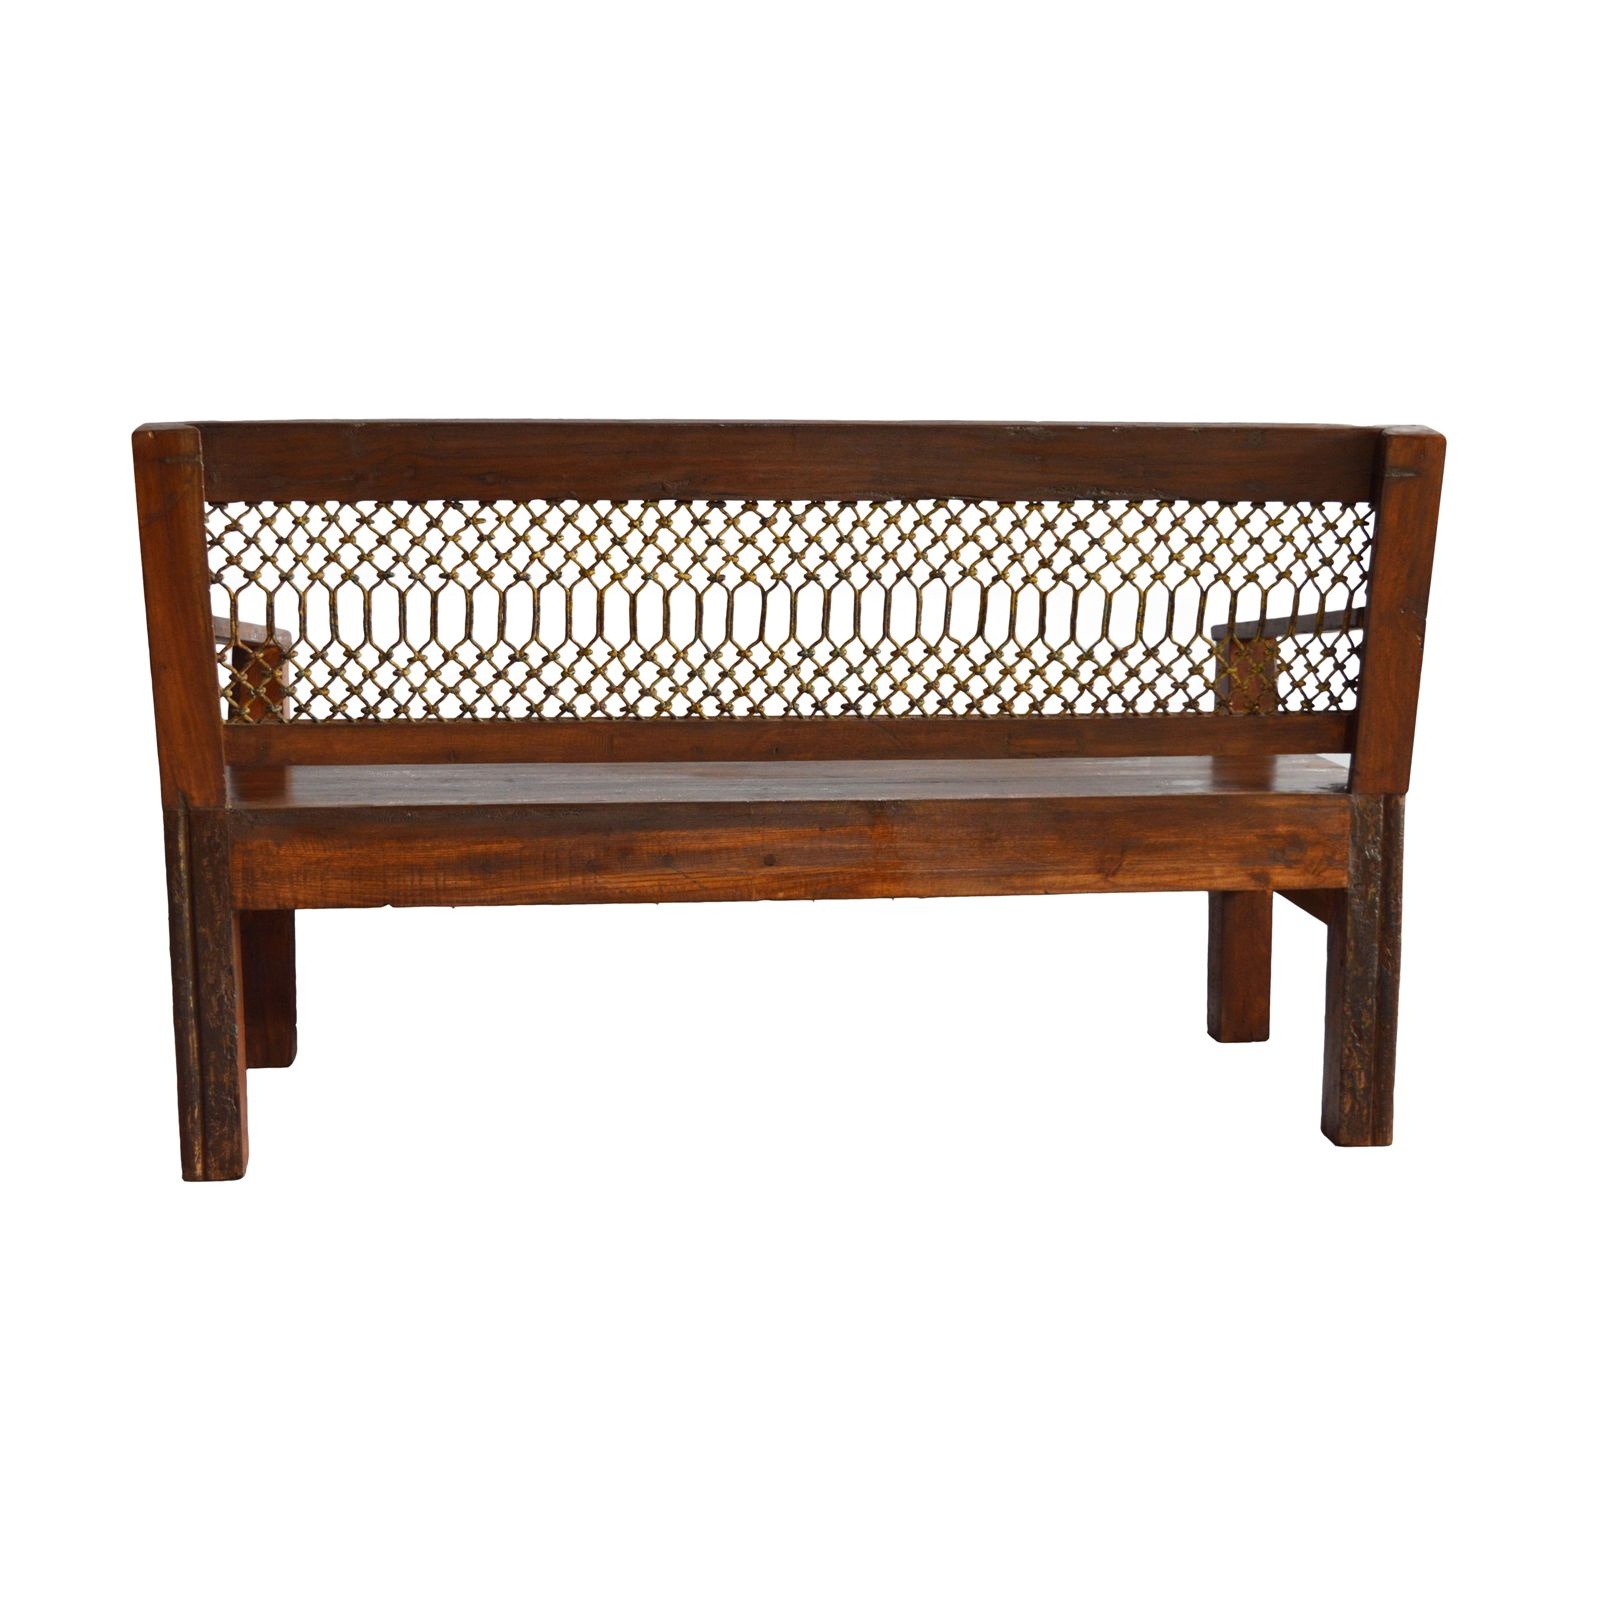 OLD TEAK WOOD WITH IRON GRILL SOFA SET